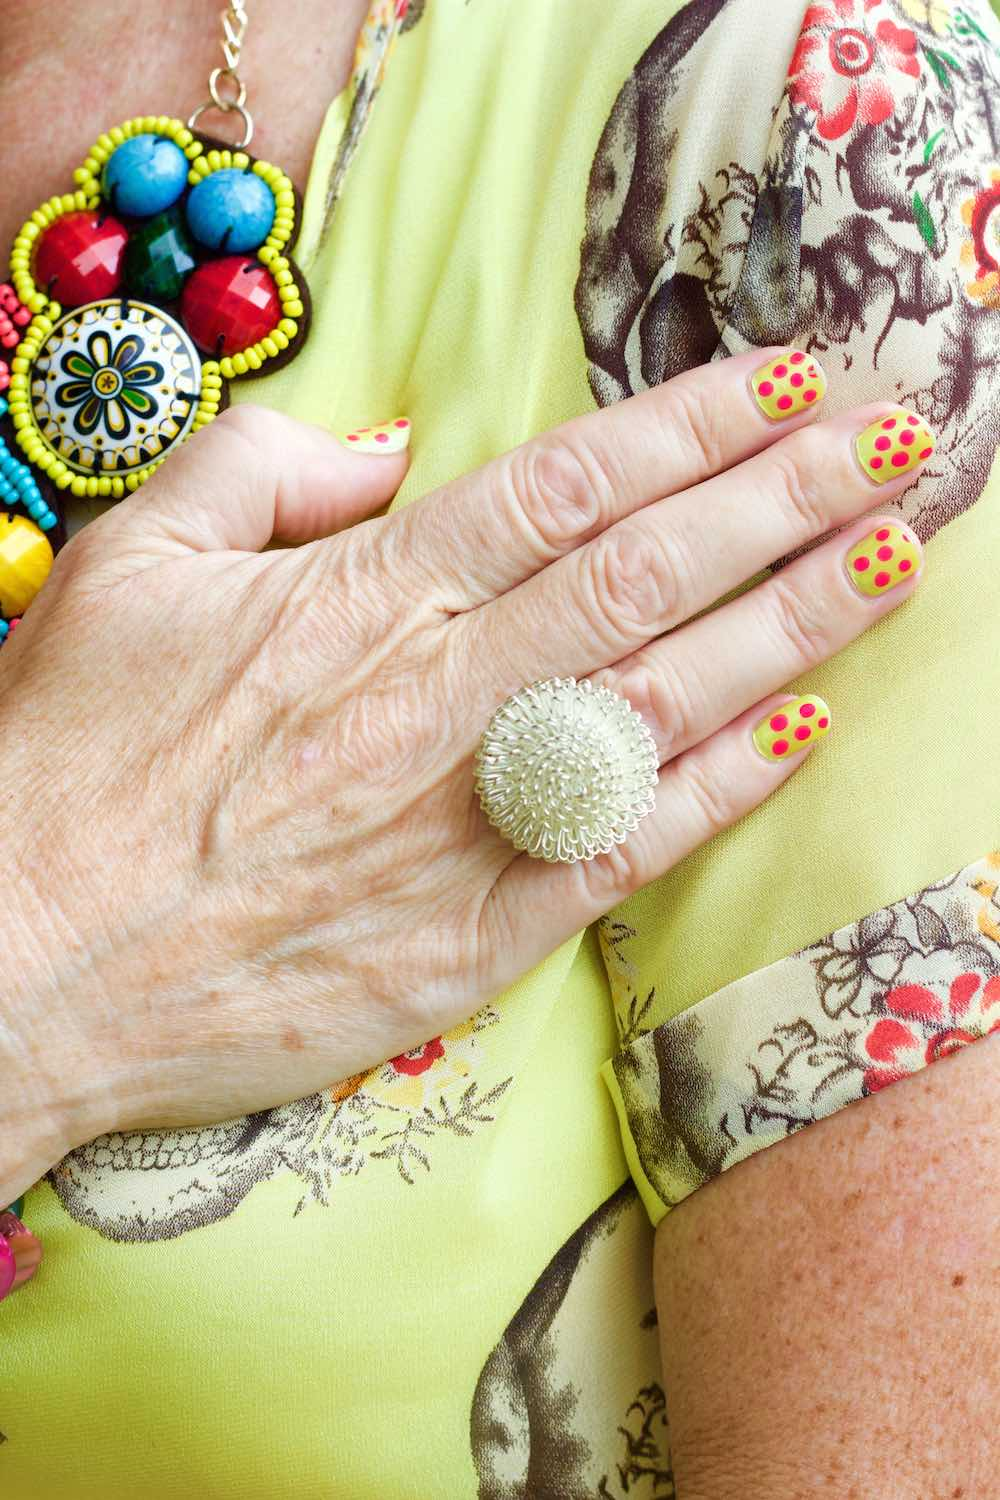 Nailpolish and accessories in yellow |curlytraveller.com